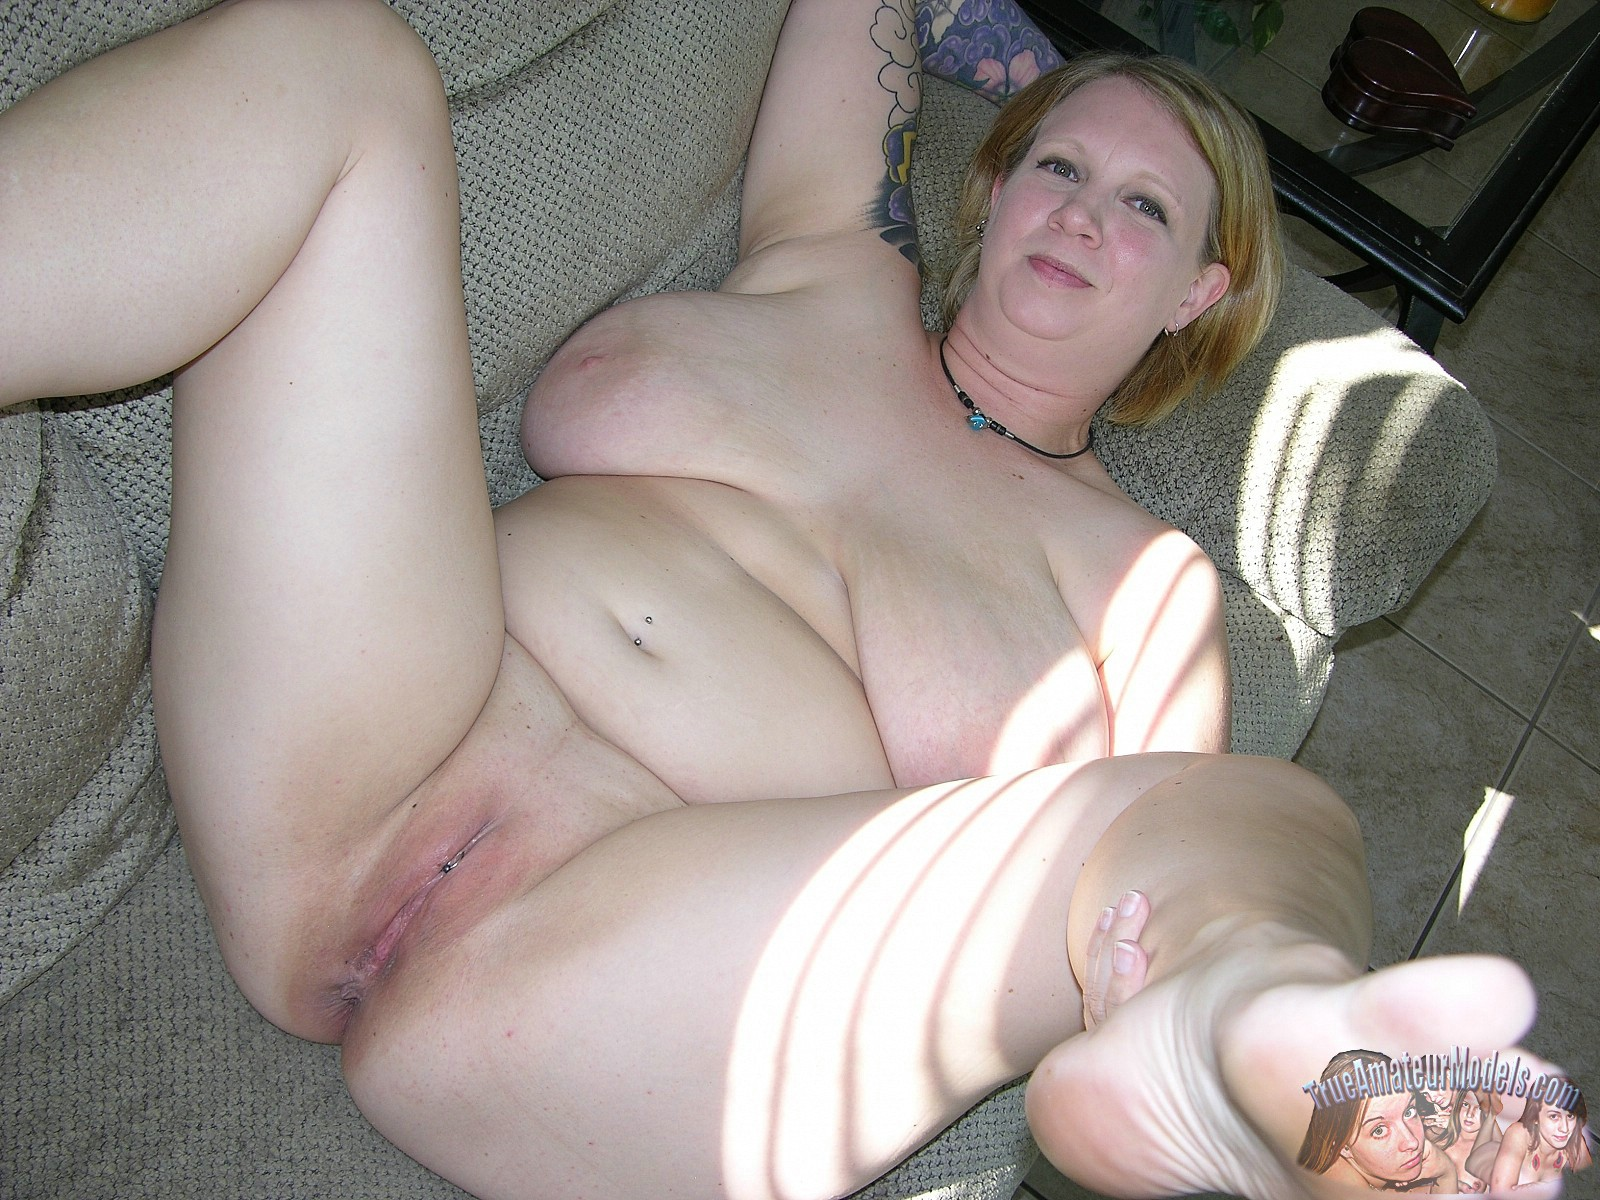 Milf with plumpy boobs gets her pussy dicked down hard 9